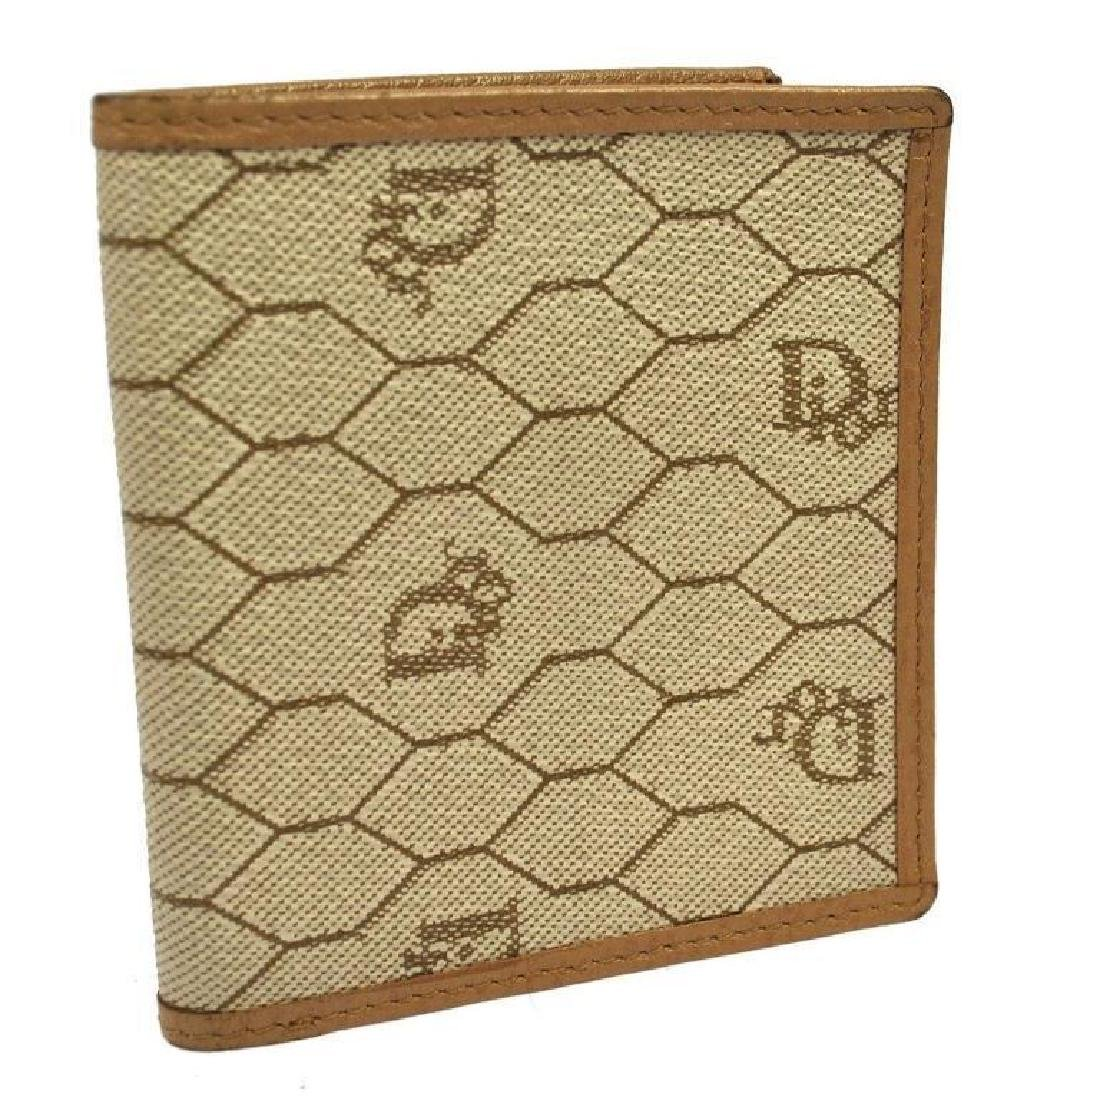 Authentic Vintage Christian Dior Bi-fold Wallet